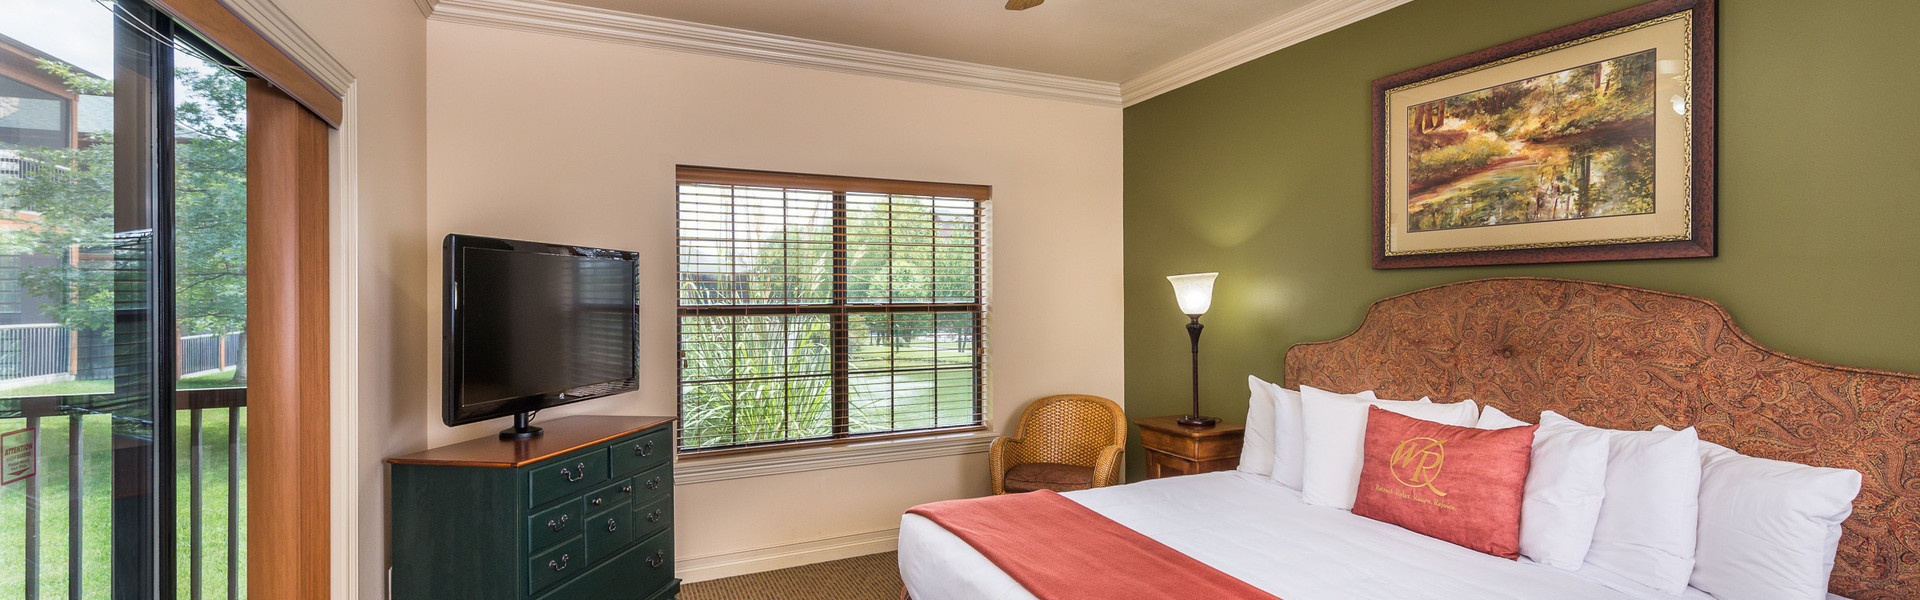 2 Bedroom Villas Suites at our Branson Hotel near Roark Valley Road | King Bed with Terrace